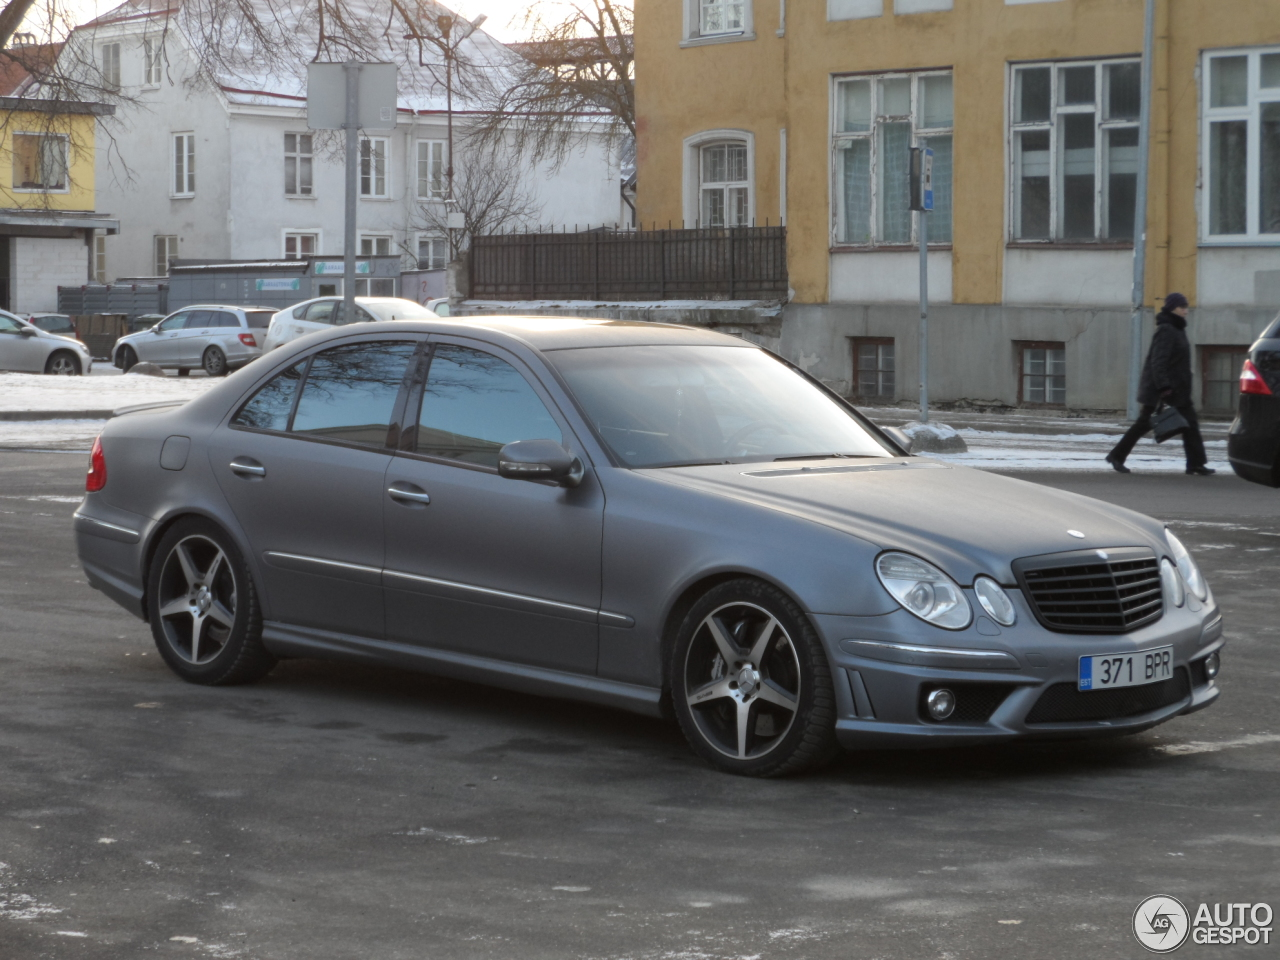 Mercedes benz e 55 amg 10 februari 2017 autogespot for Mercedes benz e 55 amg